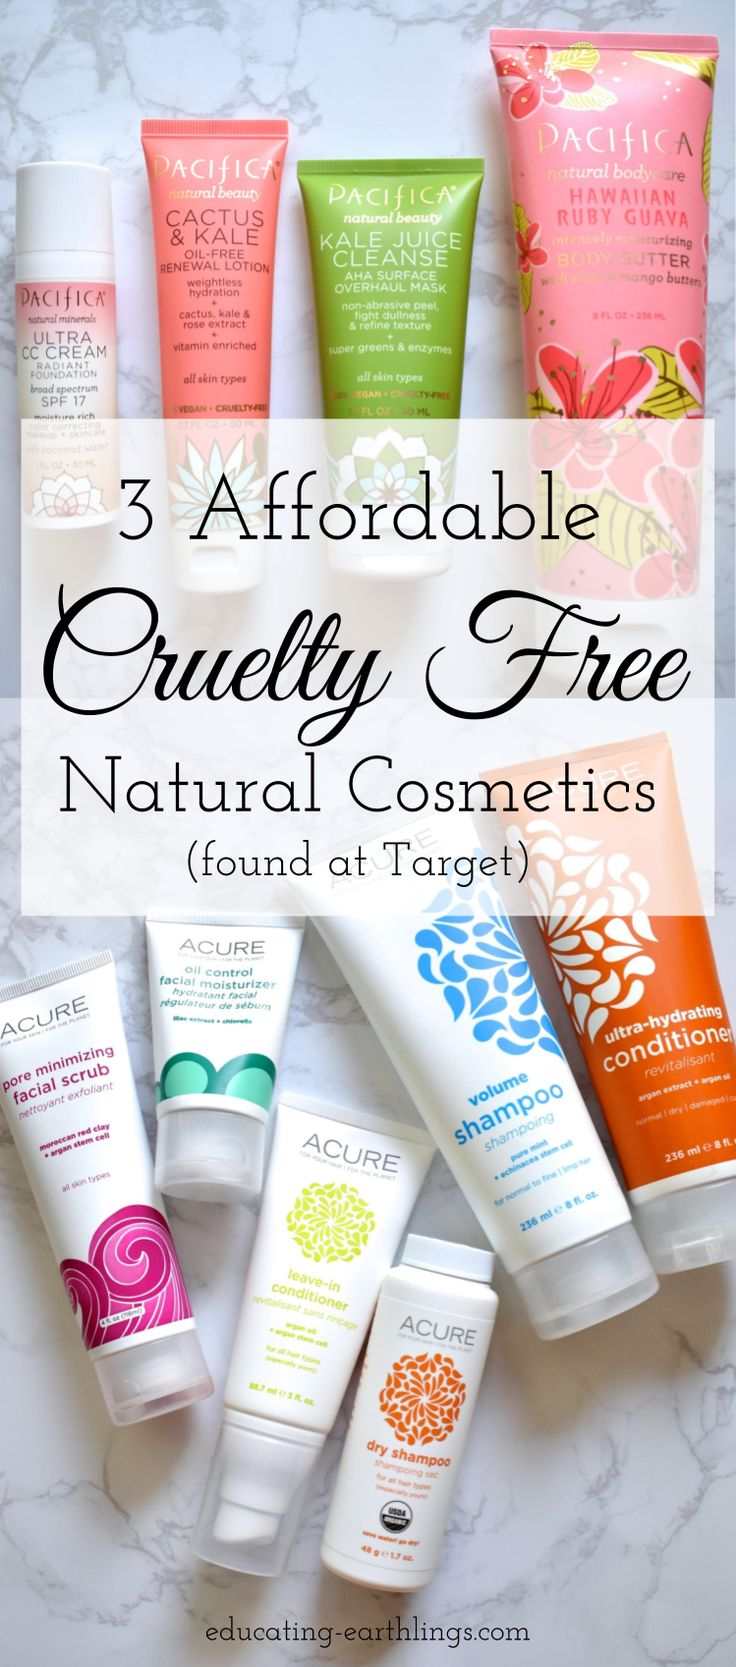 affordable & cruelty free cosmetics found at target! Pacifica cosmetics, elf cosmetics, Acure cosmetics, all natural and cruelty free cosmetics, cheap cruelty free makeup